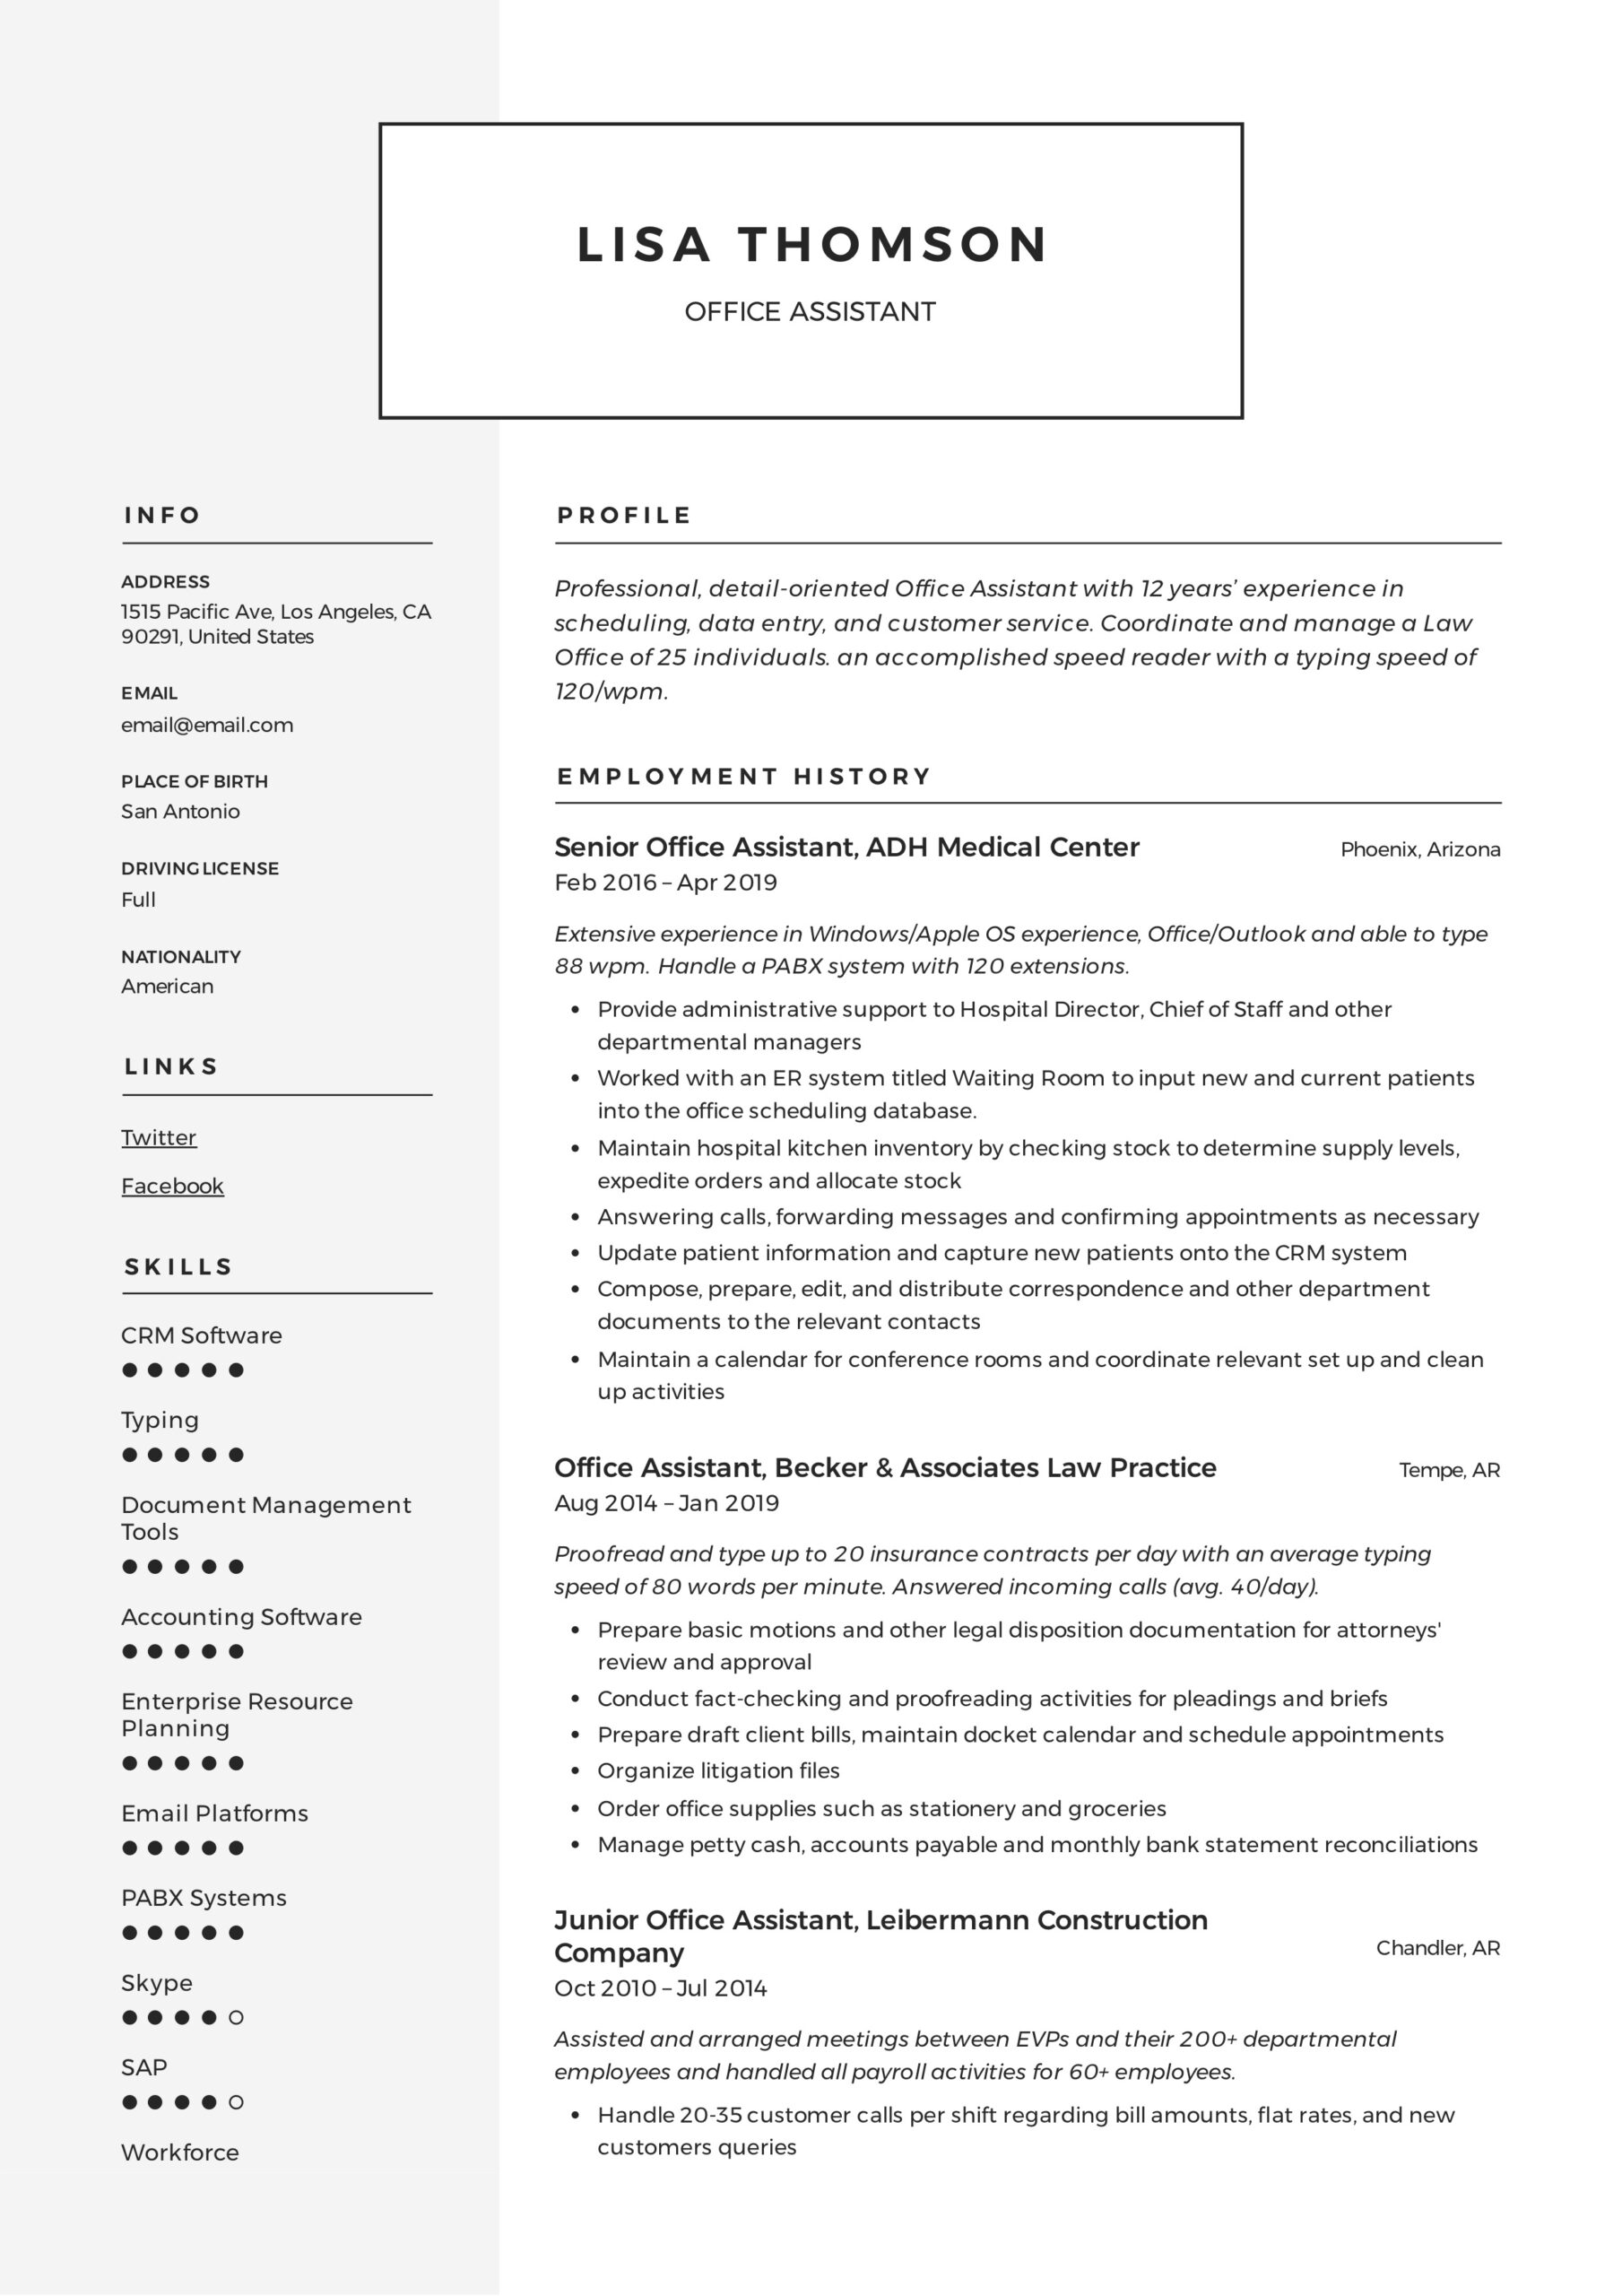 office assistant resume writing guide templates duties responsibilities lisa thomson Resume Office Assistant Duties Responsibilities Resume